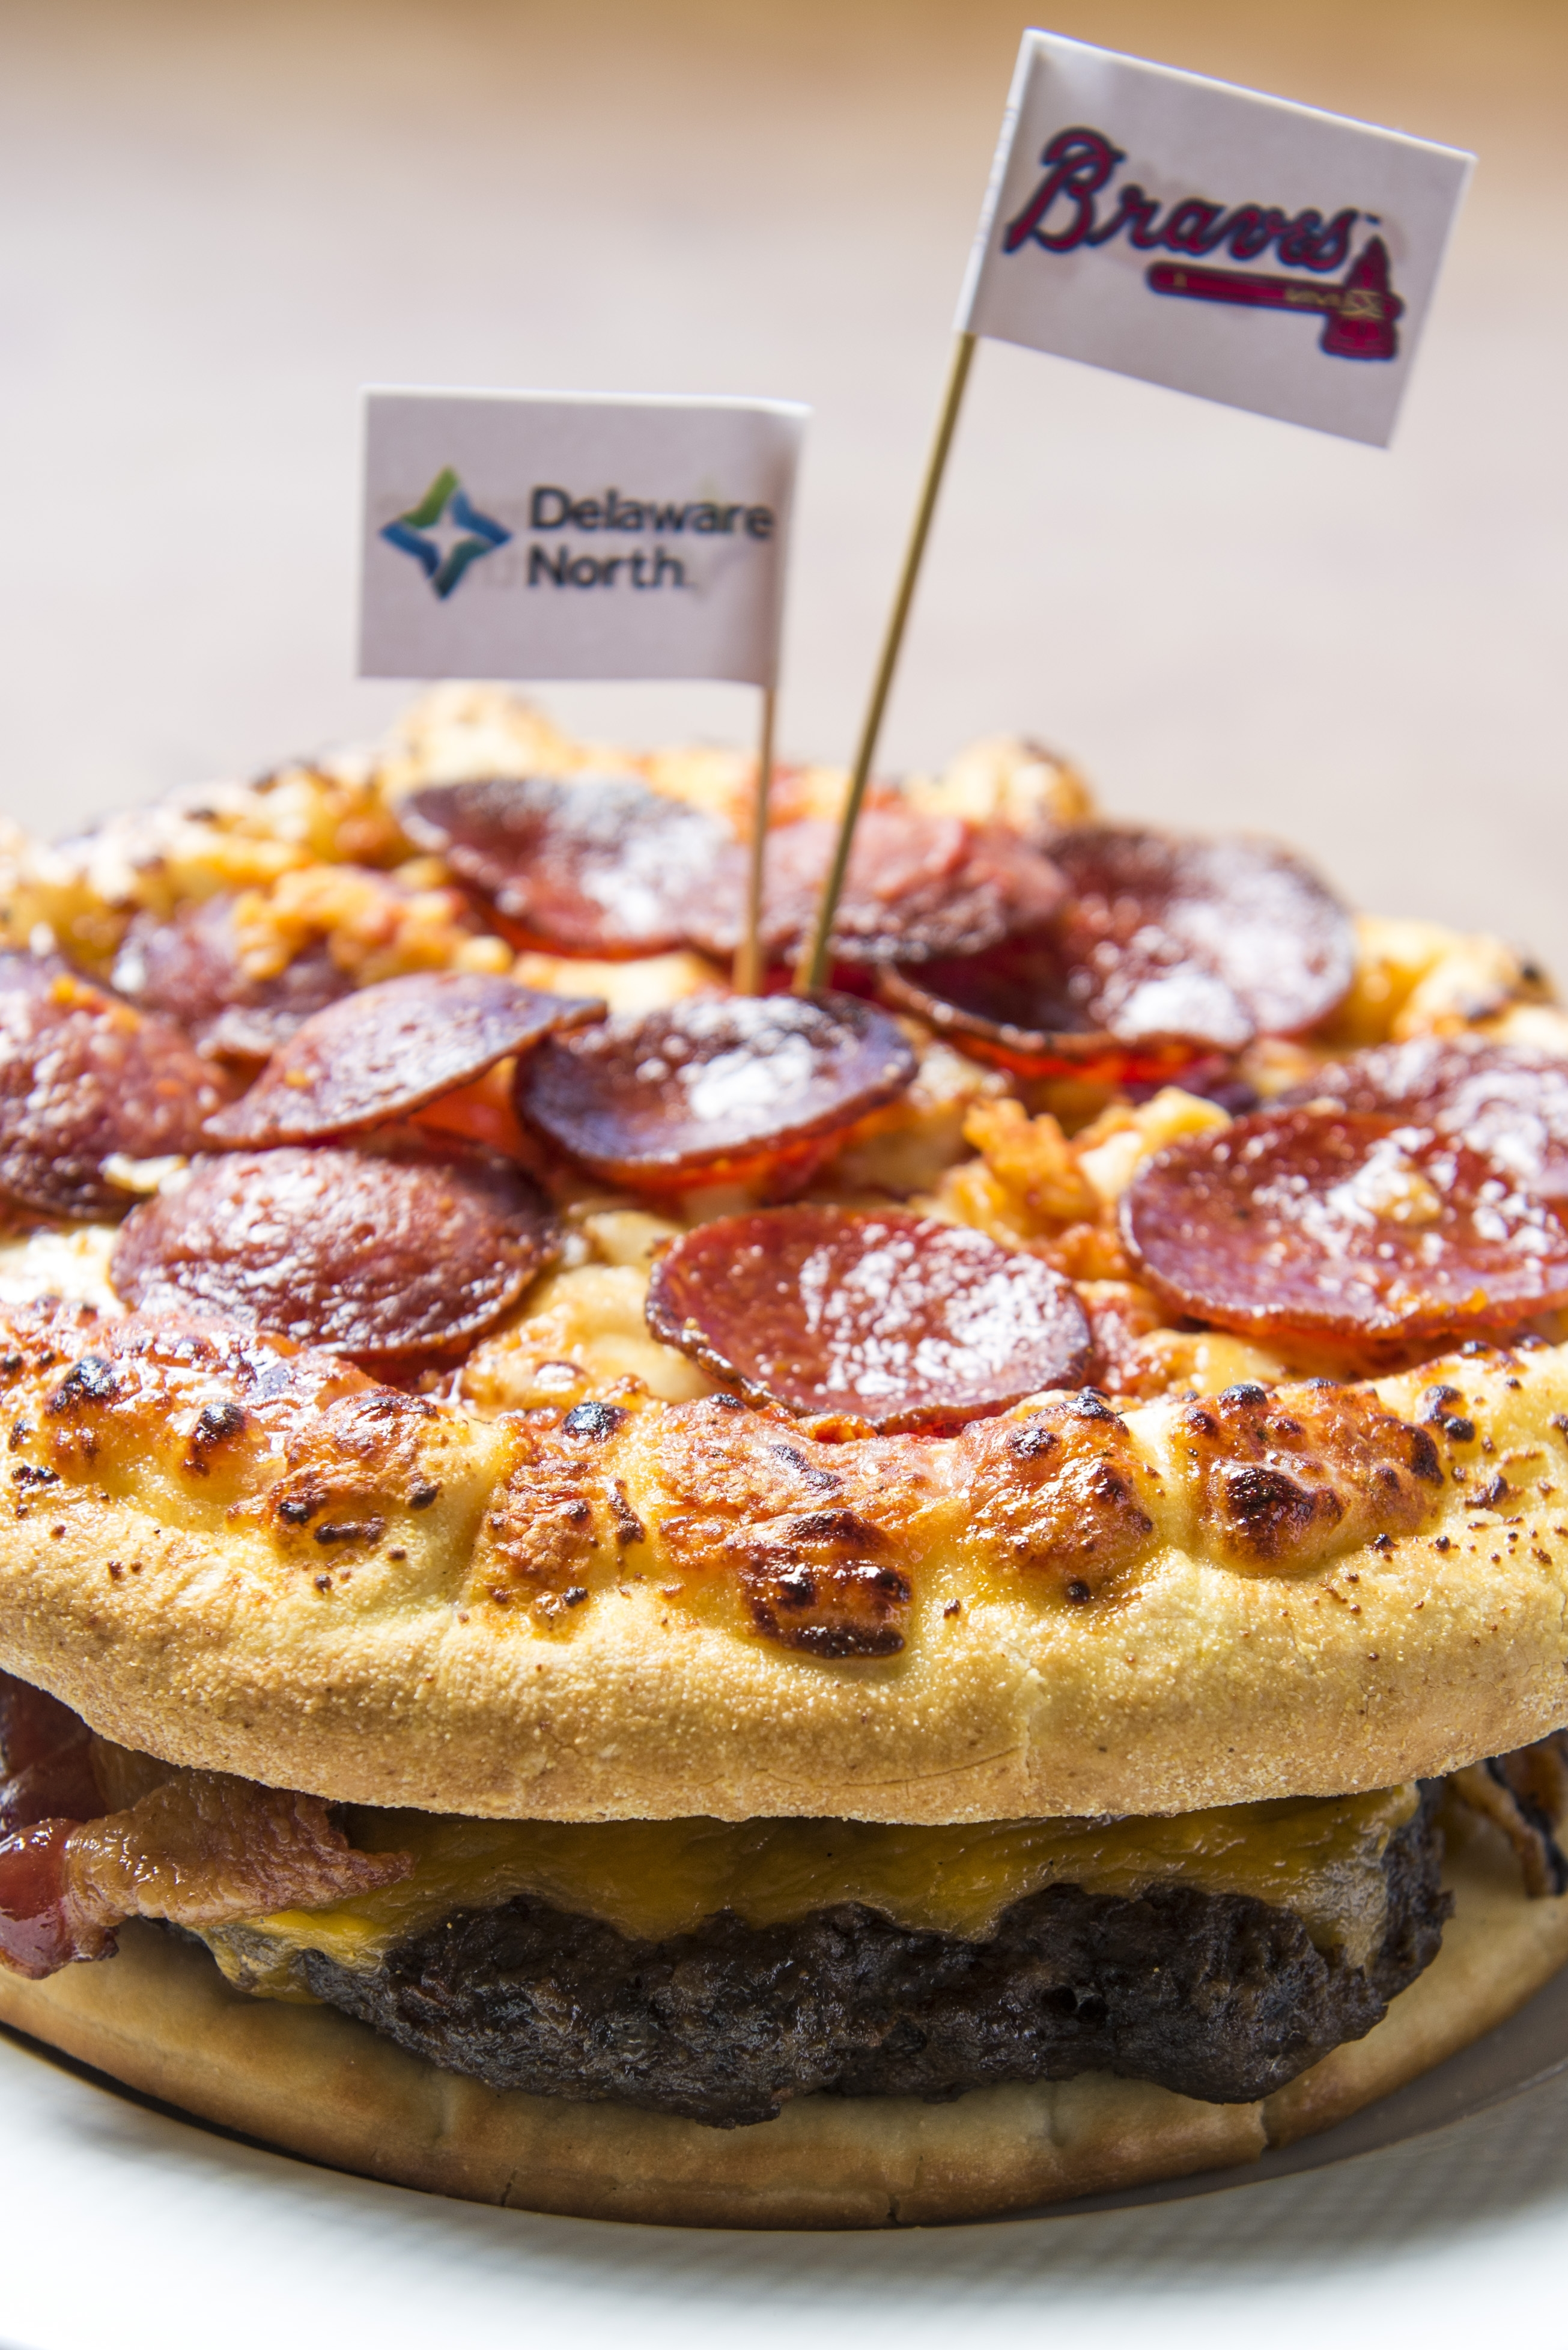 """In this March 22, 2016 photo released by the Atlanta Braves, the """"Burgerizza"""" is shown in Atlanta. A grilled 20oz. all beef patty, covered with five slices of cheddar cheese, topped with crispy bacon, and served between two 8-inch  Pepperoni Pizzas is one"""